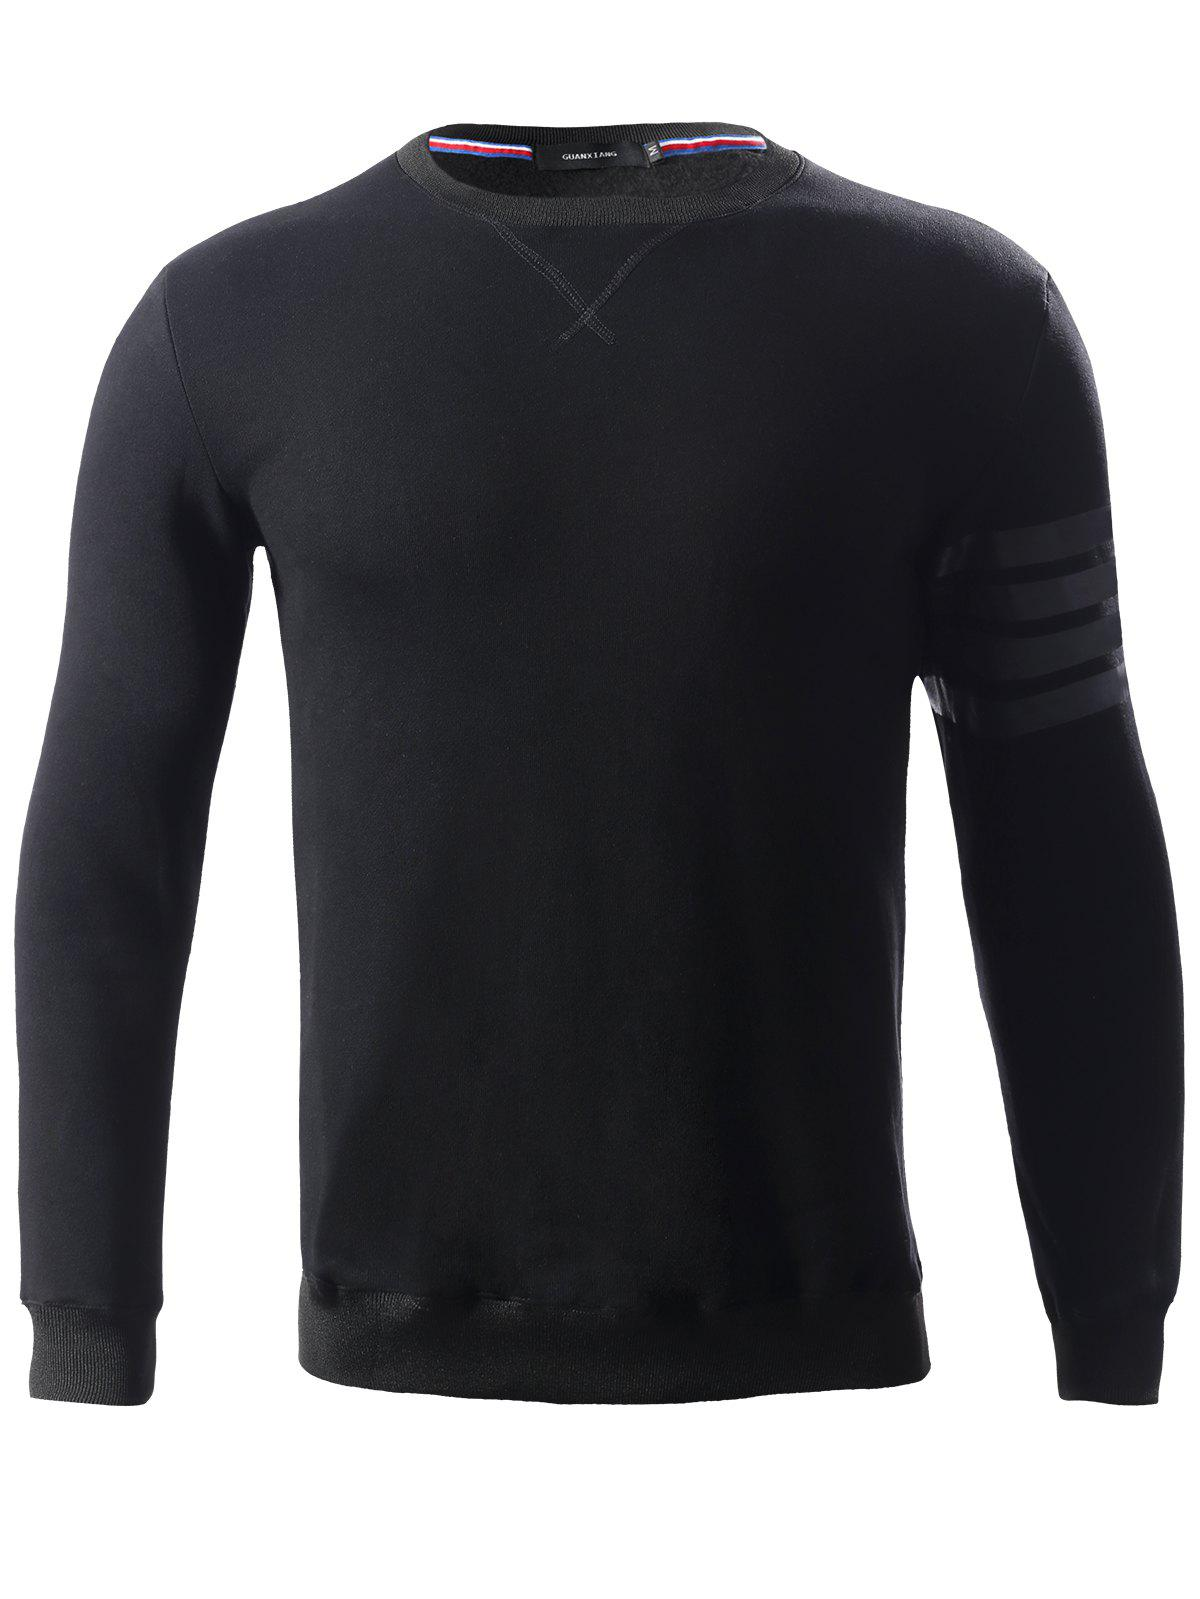 Stripe Embellished Round Neck Long Sleeve Loose-Fitting Thicken Men's Sweatshirt